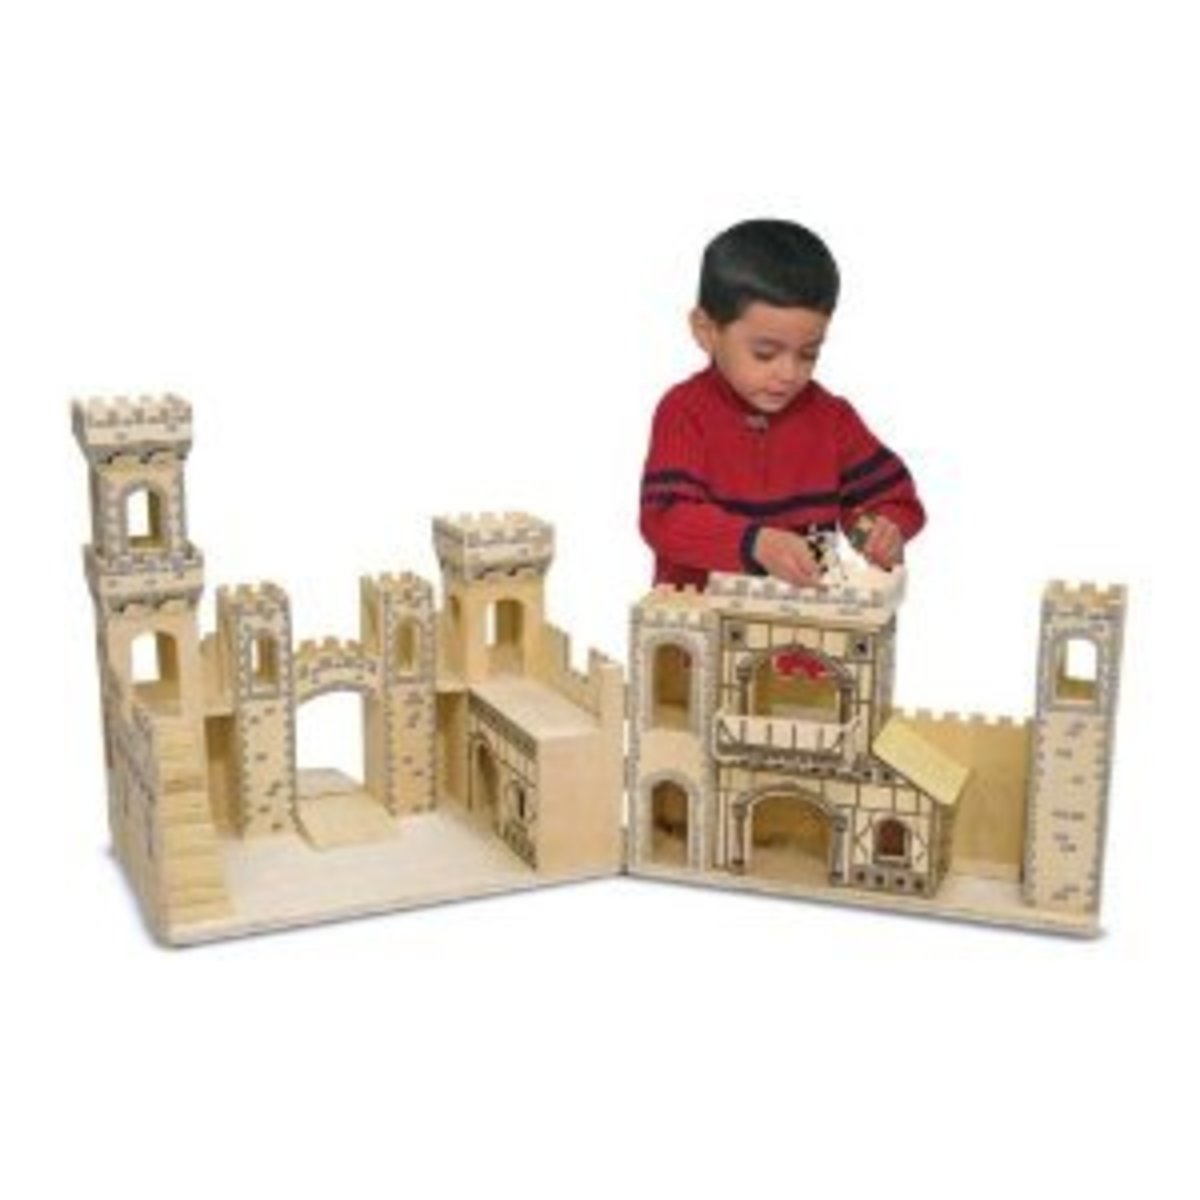 Toy Castles For Toddler Boys : Toy castles forts for children kids wooden